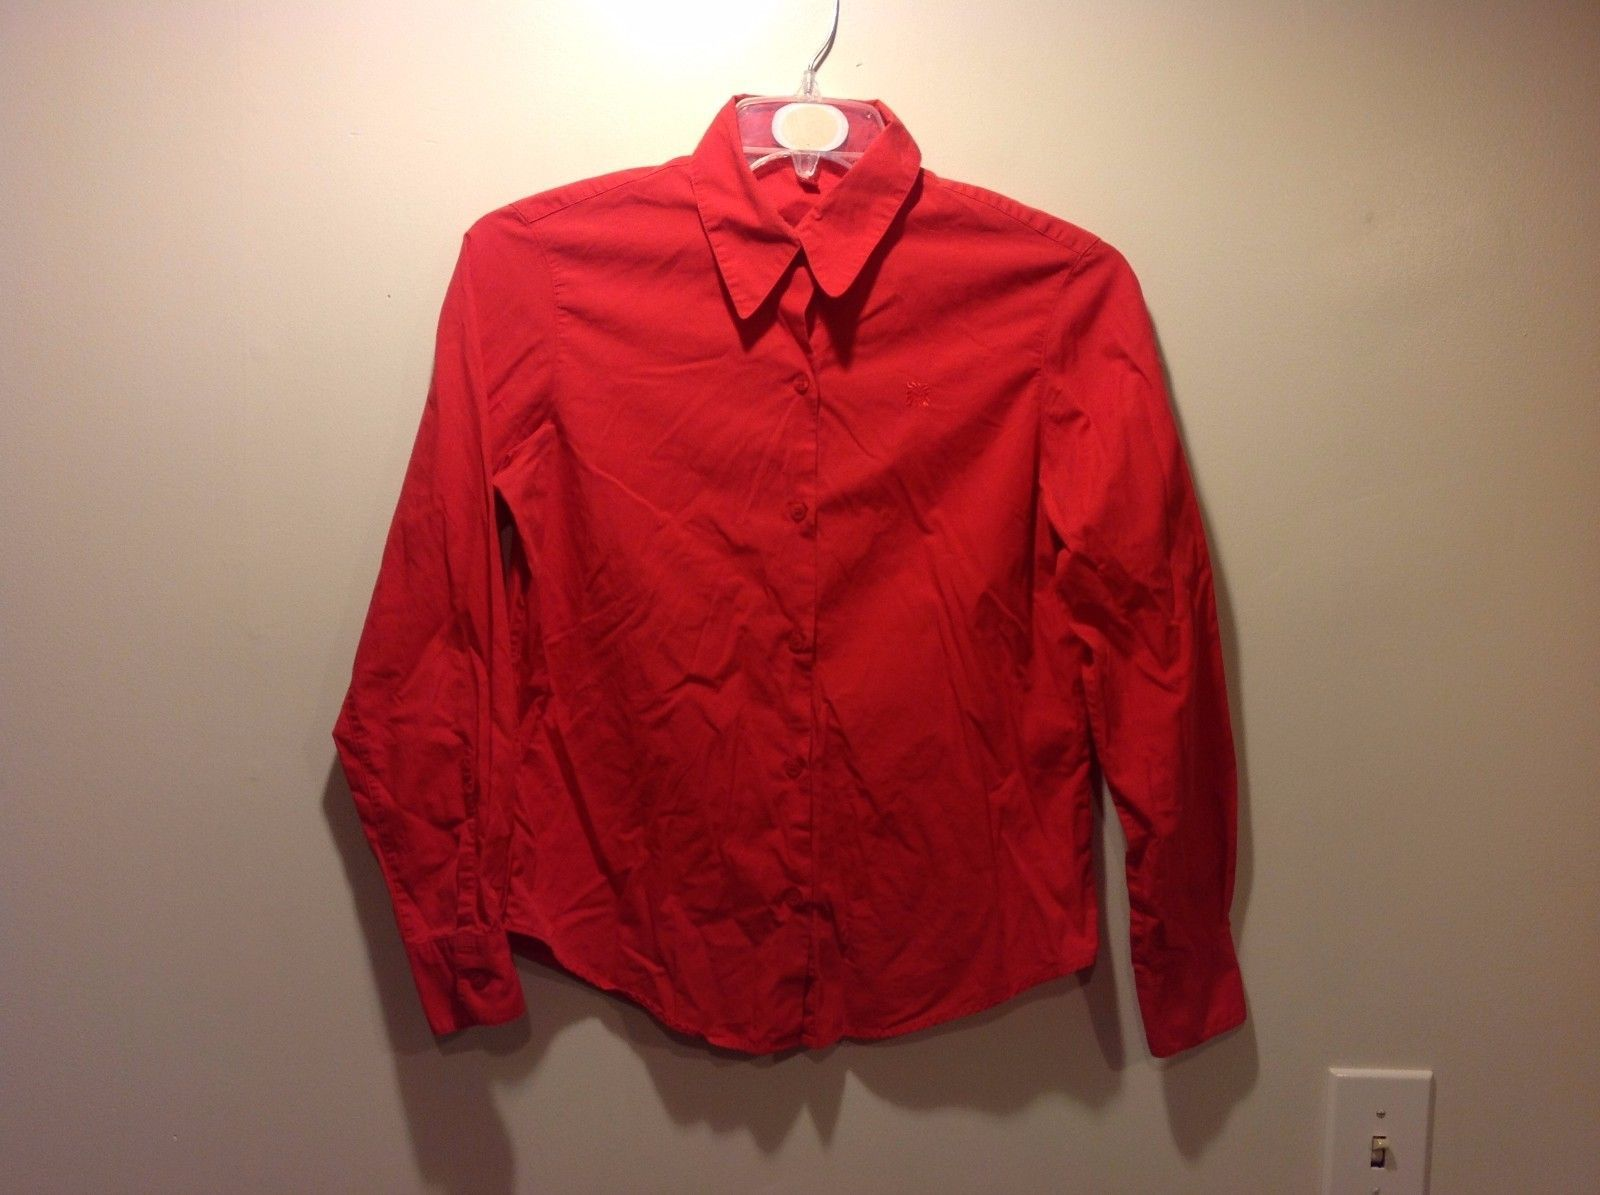 Ladies Scarlet Colored Long Sleeve Button Up Blouse by Anne Klein Sz 8